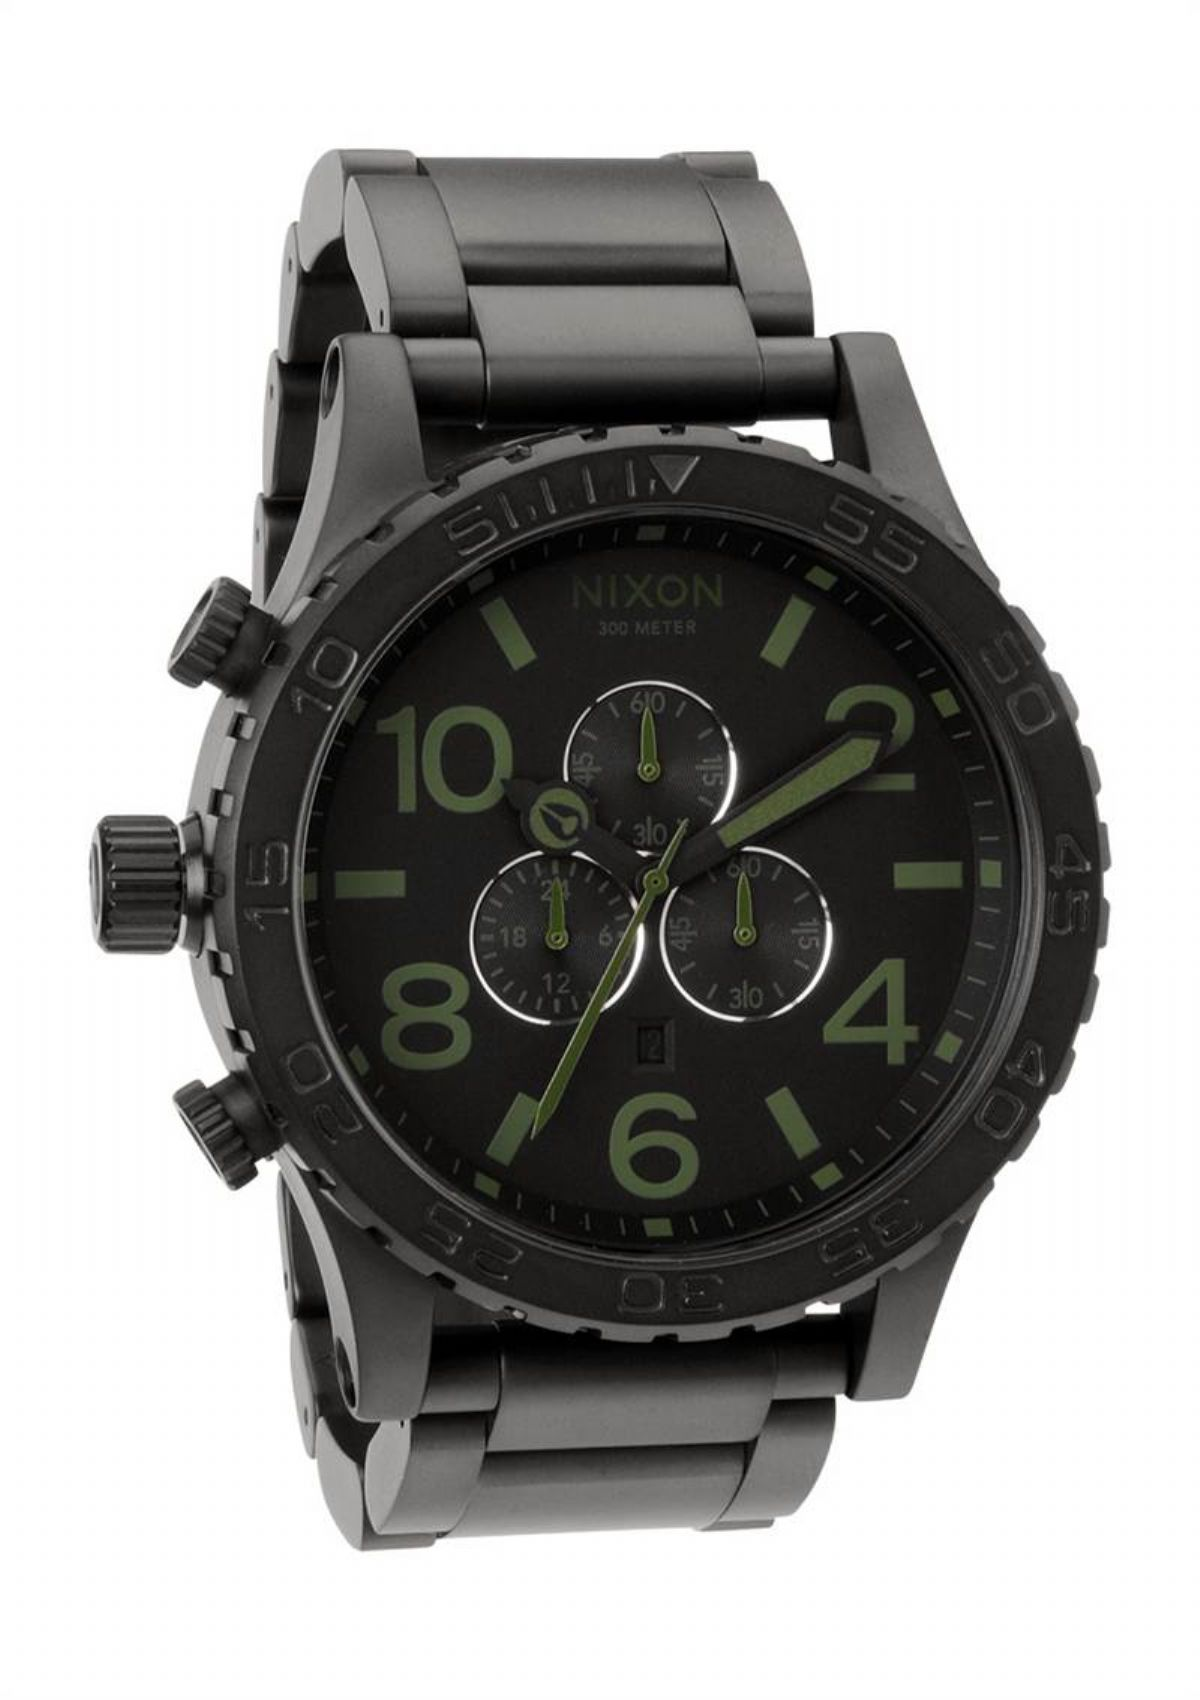 upload/product_display_image/201406/the_51-30_chrono_matte_black_surplus_a.jpg